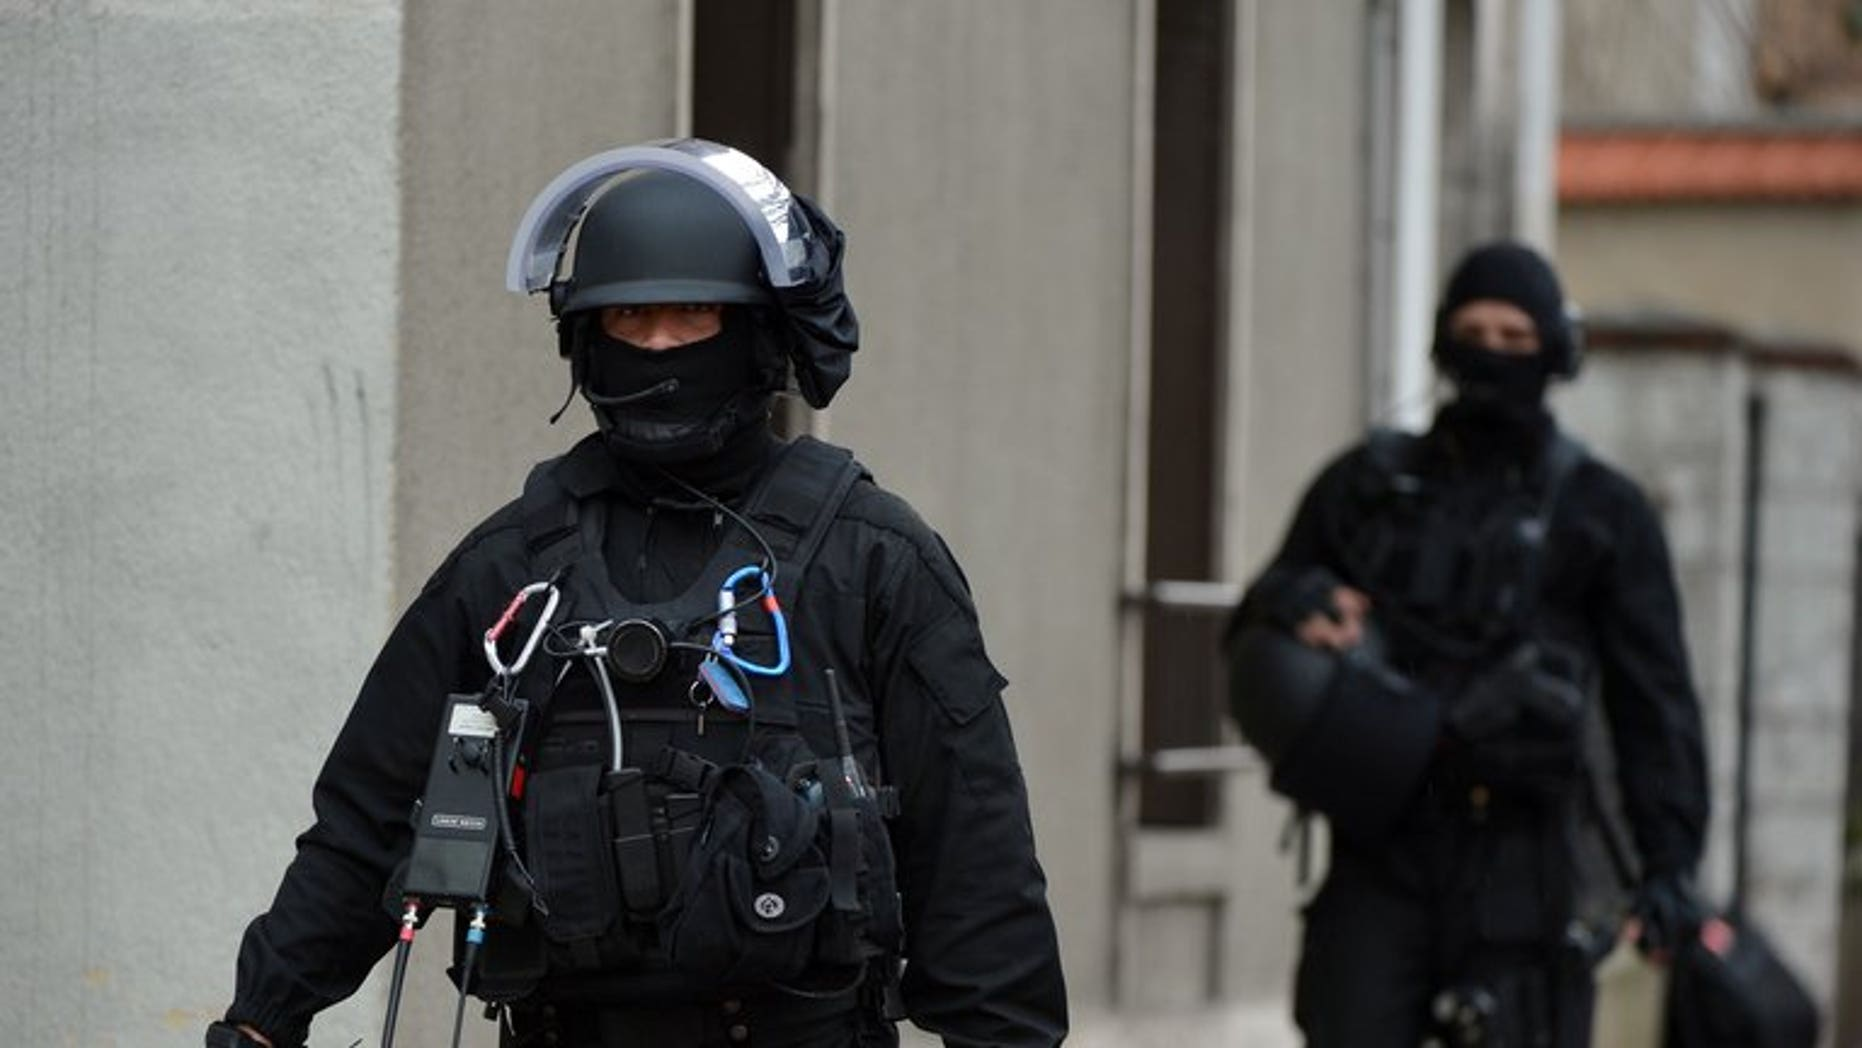 "Members of a special operations tactical unit of the French police are pictured on April 10, 2013 in a Paris suburb. Six people were arrested in the Paris region on Monday in coordinated raids on members of a suspected radical Islamist cell allegedly planning ""terrorist acts"" on French soil, a source close to the investigation told AFP."